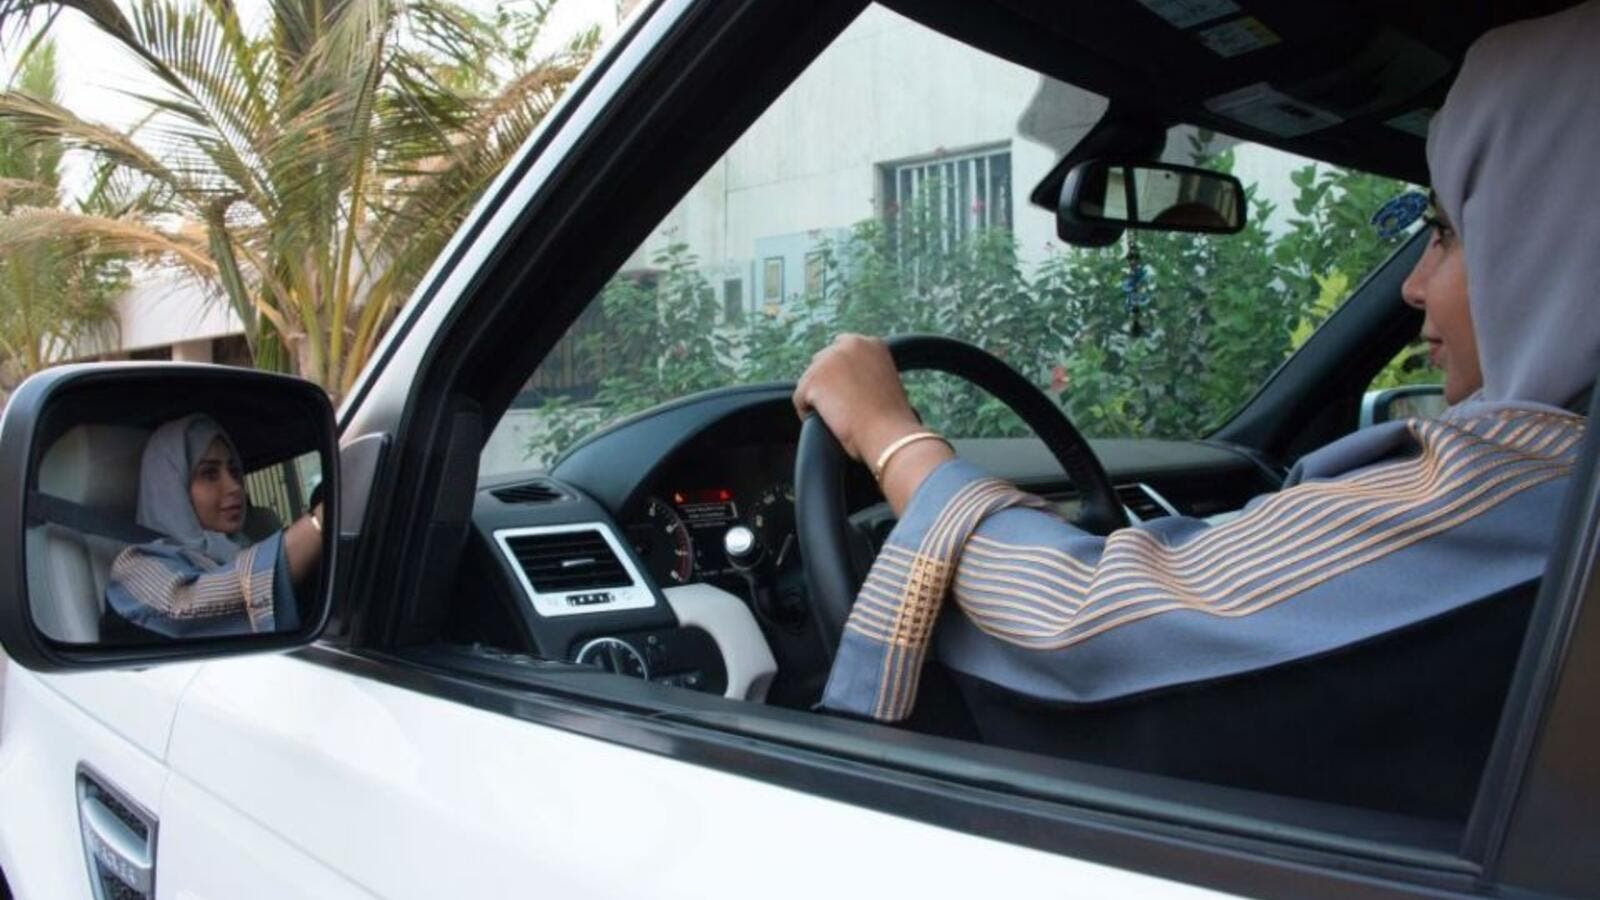 Many welcomed the Saudi royal decree which will allow women in the kingdom to legally drive, with many saying that it will help them become 'independent' (AFP/File Photo)